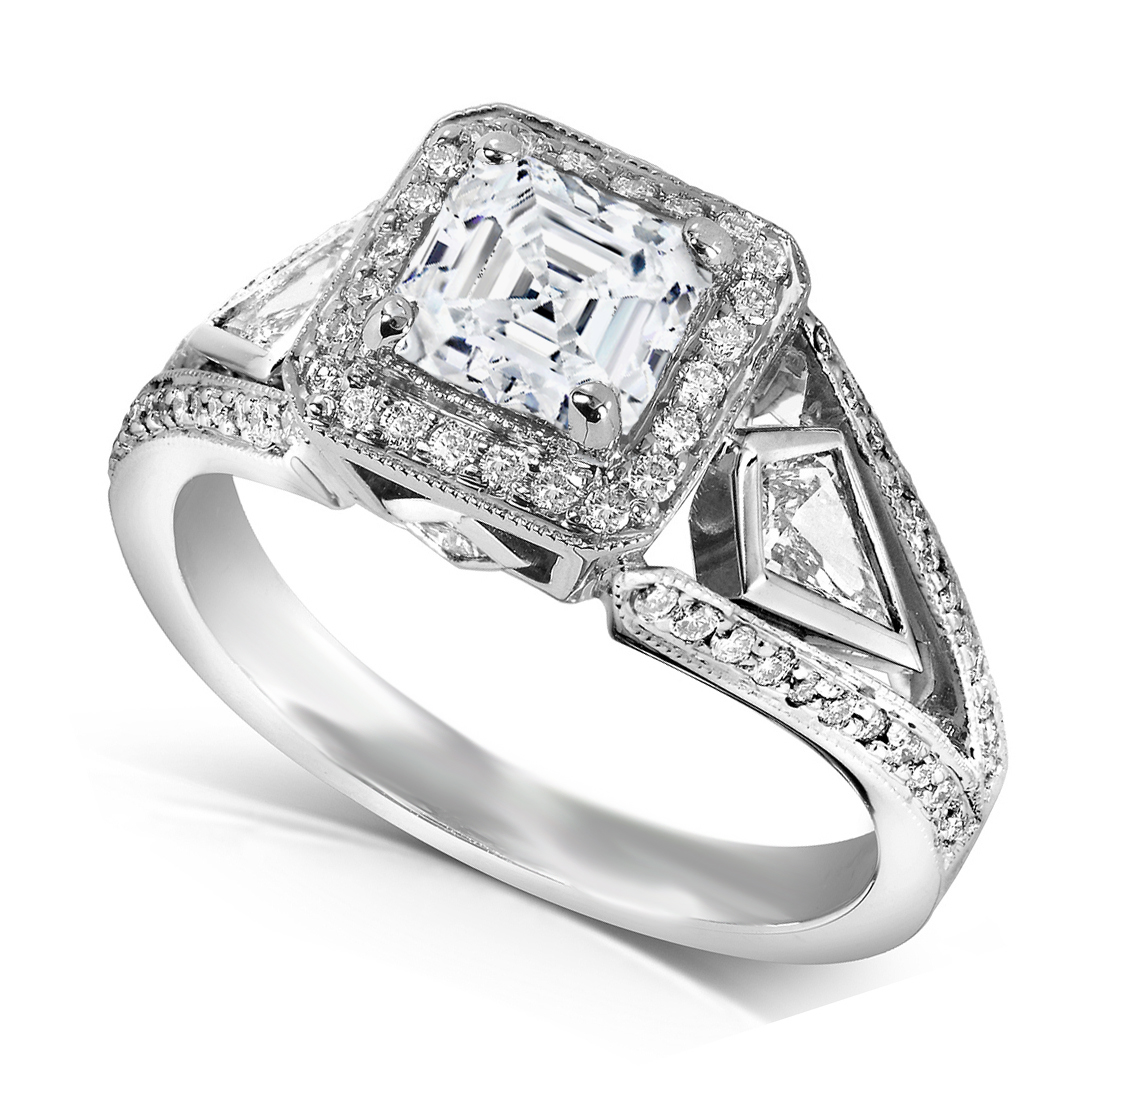 asscher engagement rings from mdc diamonds nyc. Black Bedroom Furniture Sets. Home Design Ideas